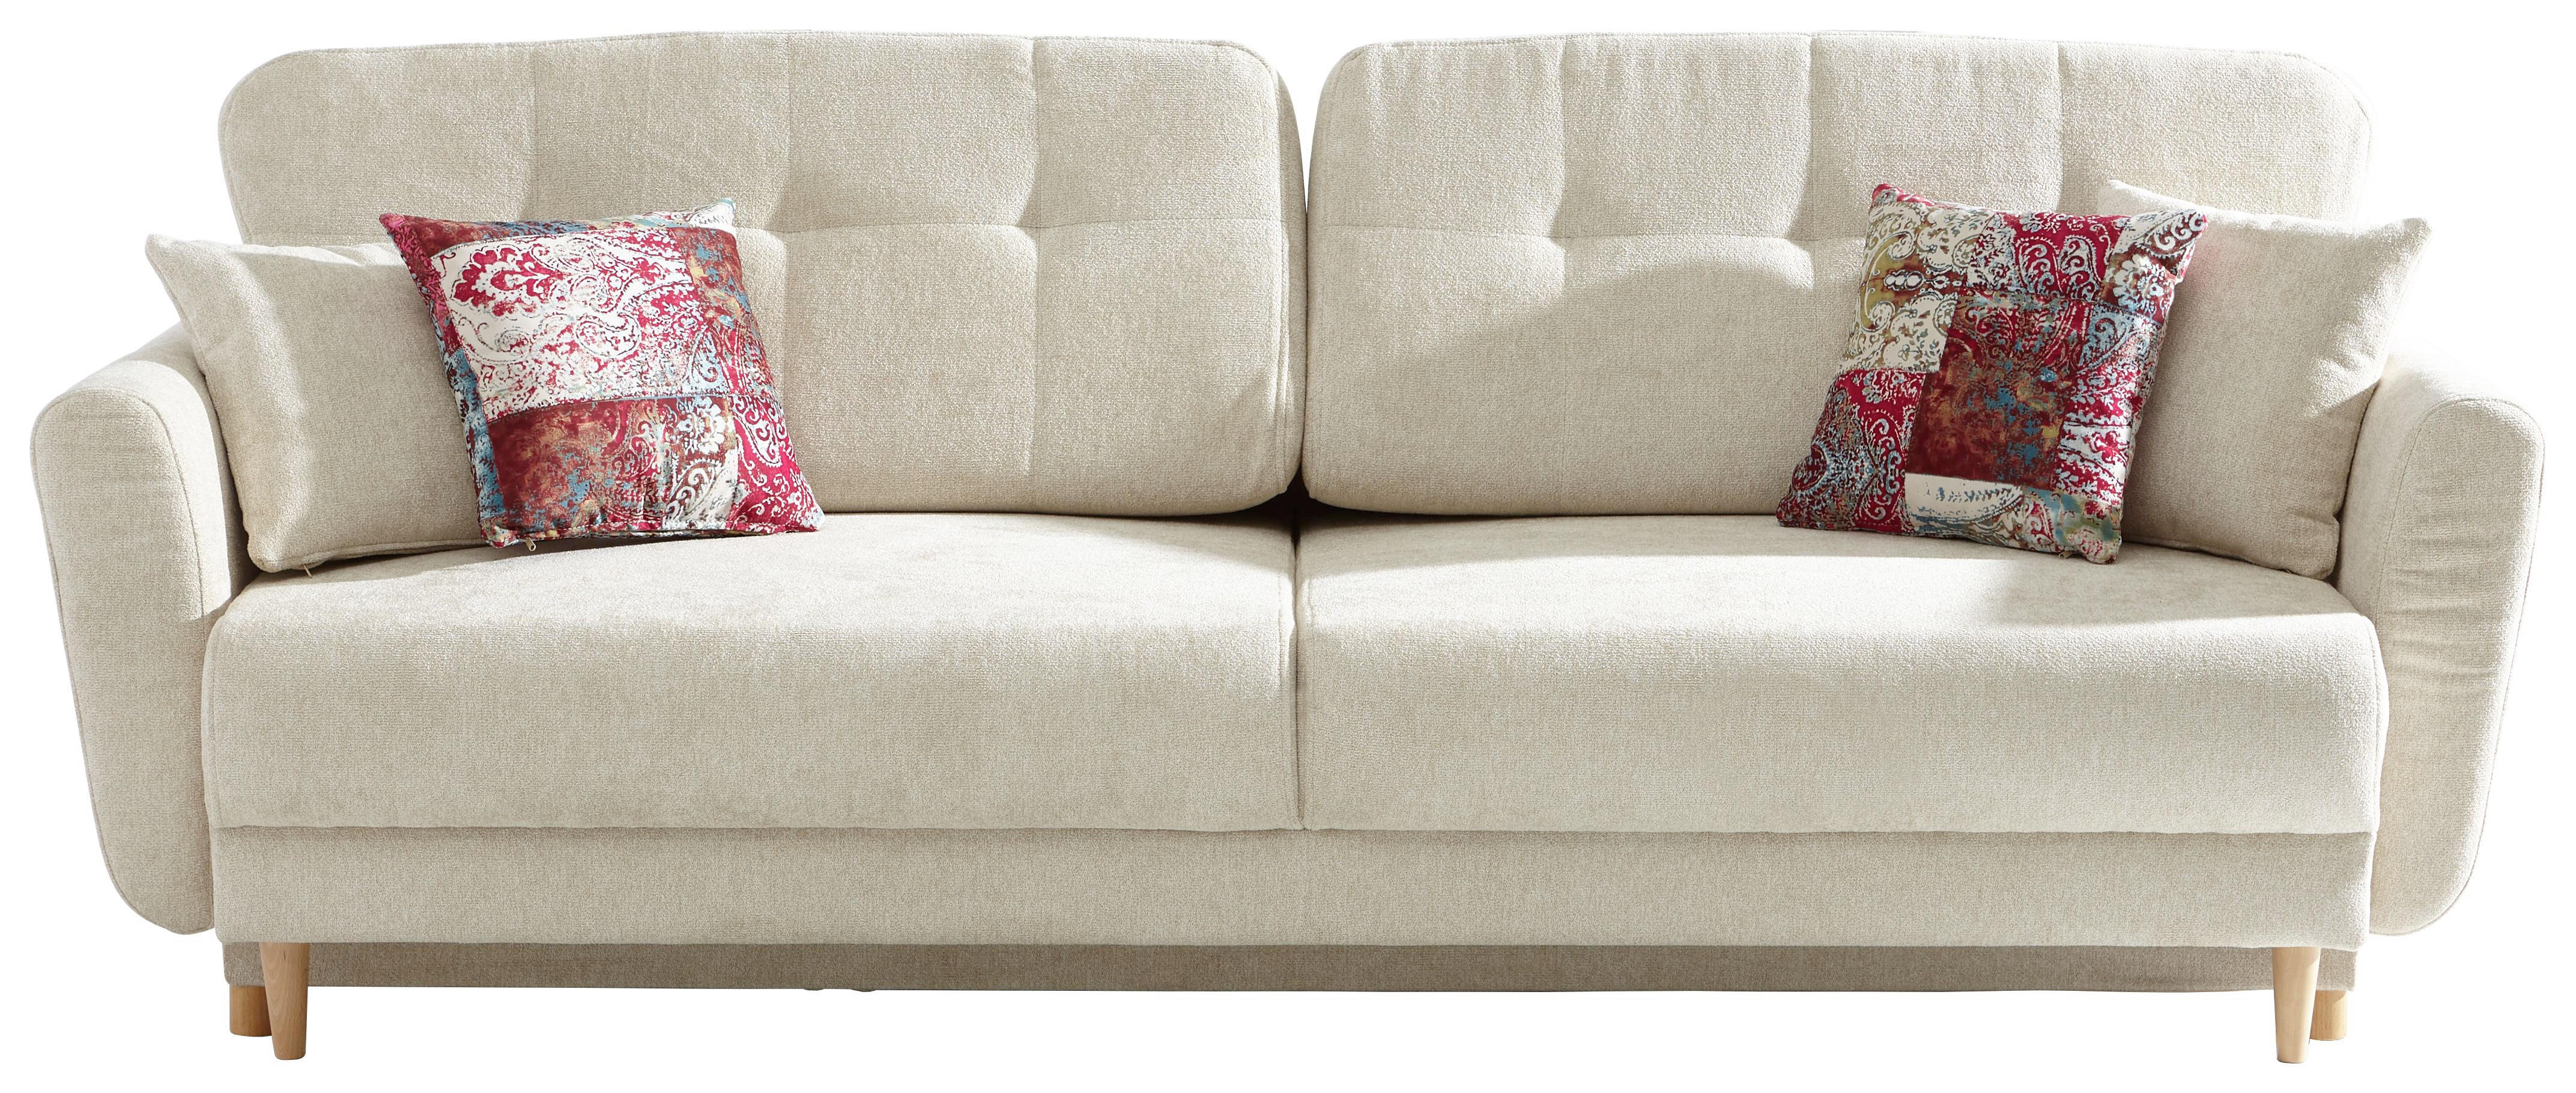 Dreisitzer Sofa Mit Schlaffunktion Dreisitzer Sofa Simple Pelin With Dreisitzer Sofa Affordable